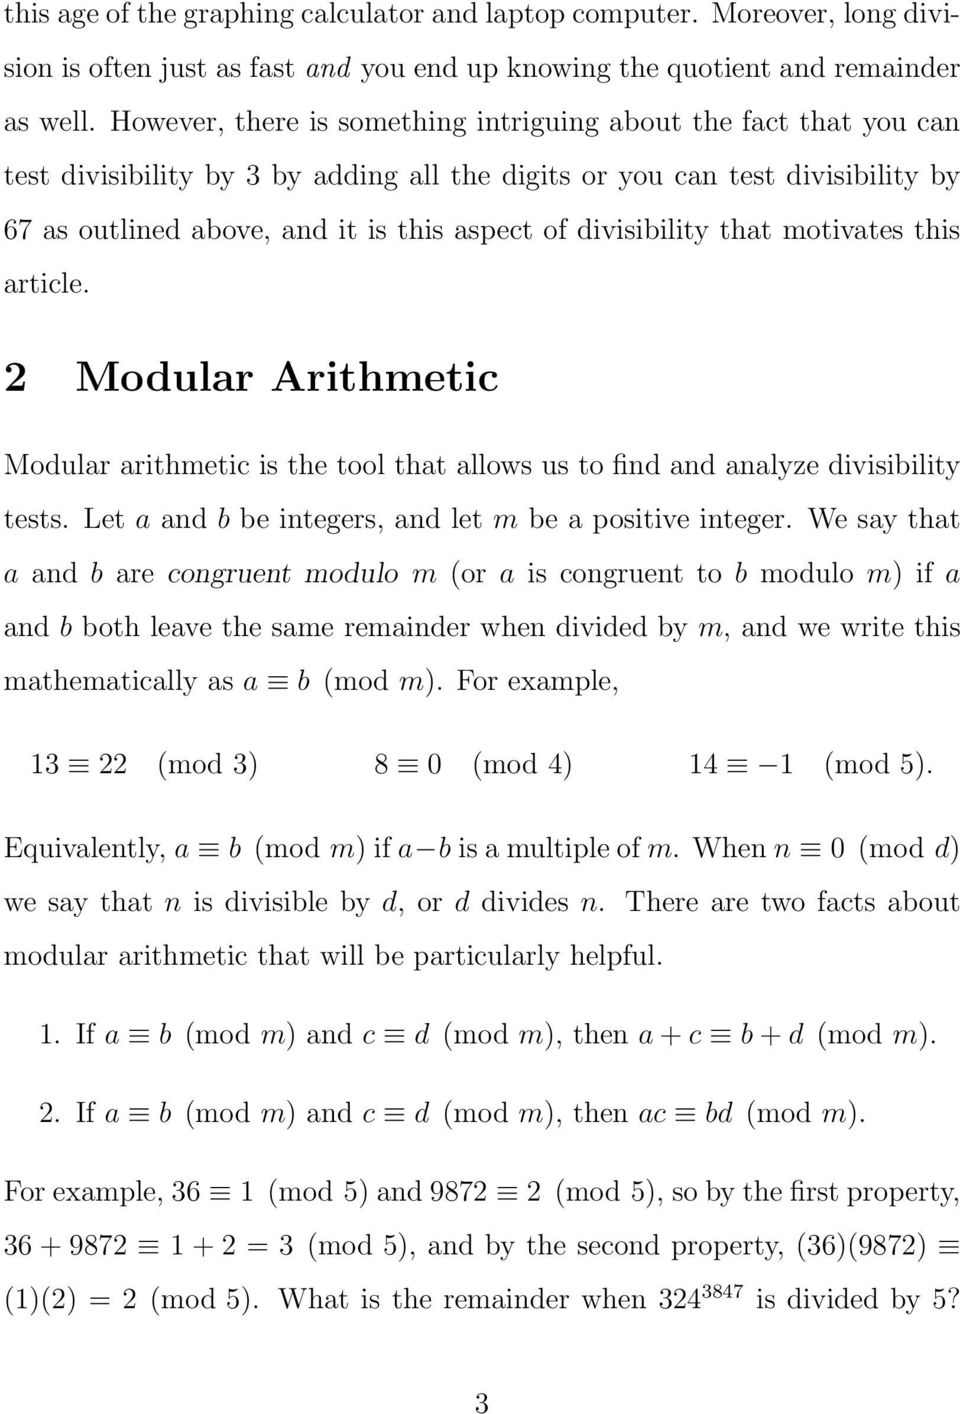 divisibility that motivates this article. 2 Modular Arithmetic Modular arithmetic is the tool that allows us to find and analyze divisibility tests.